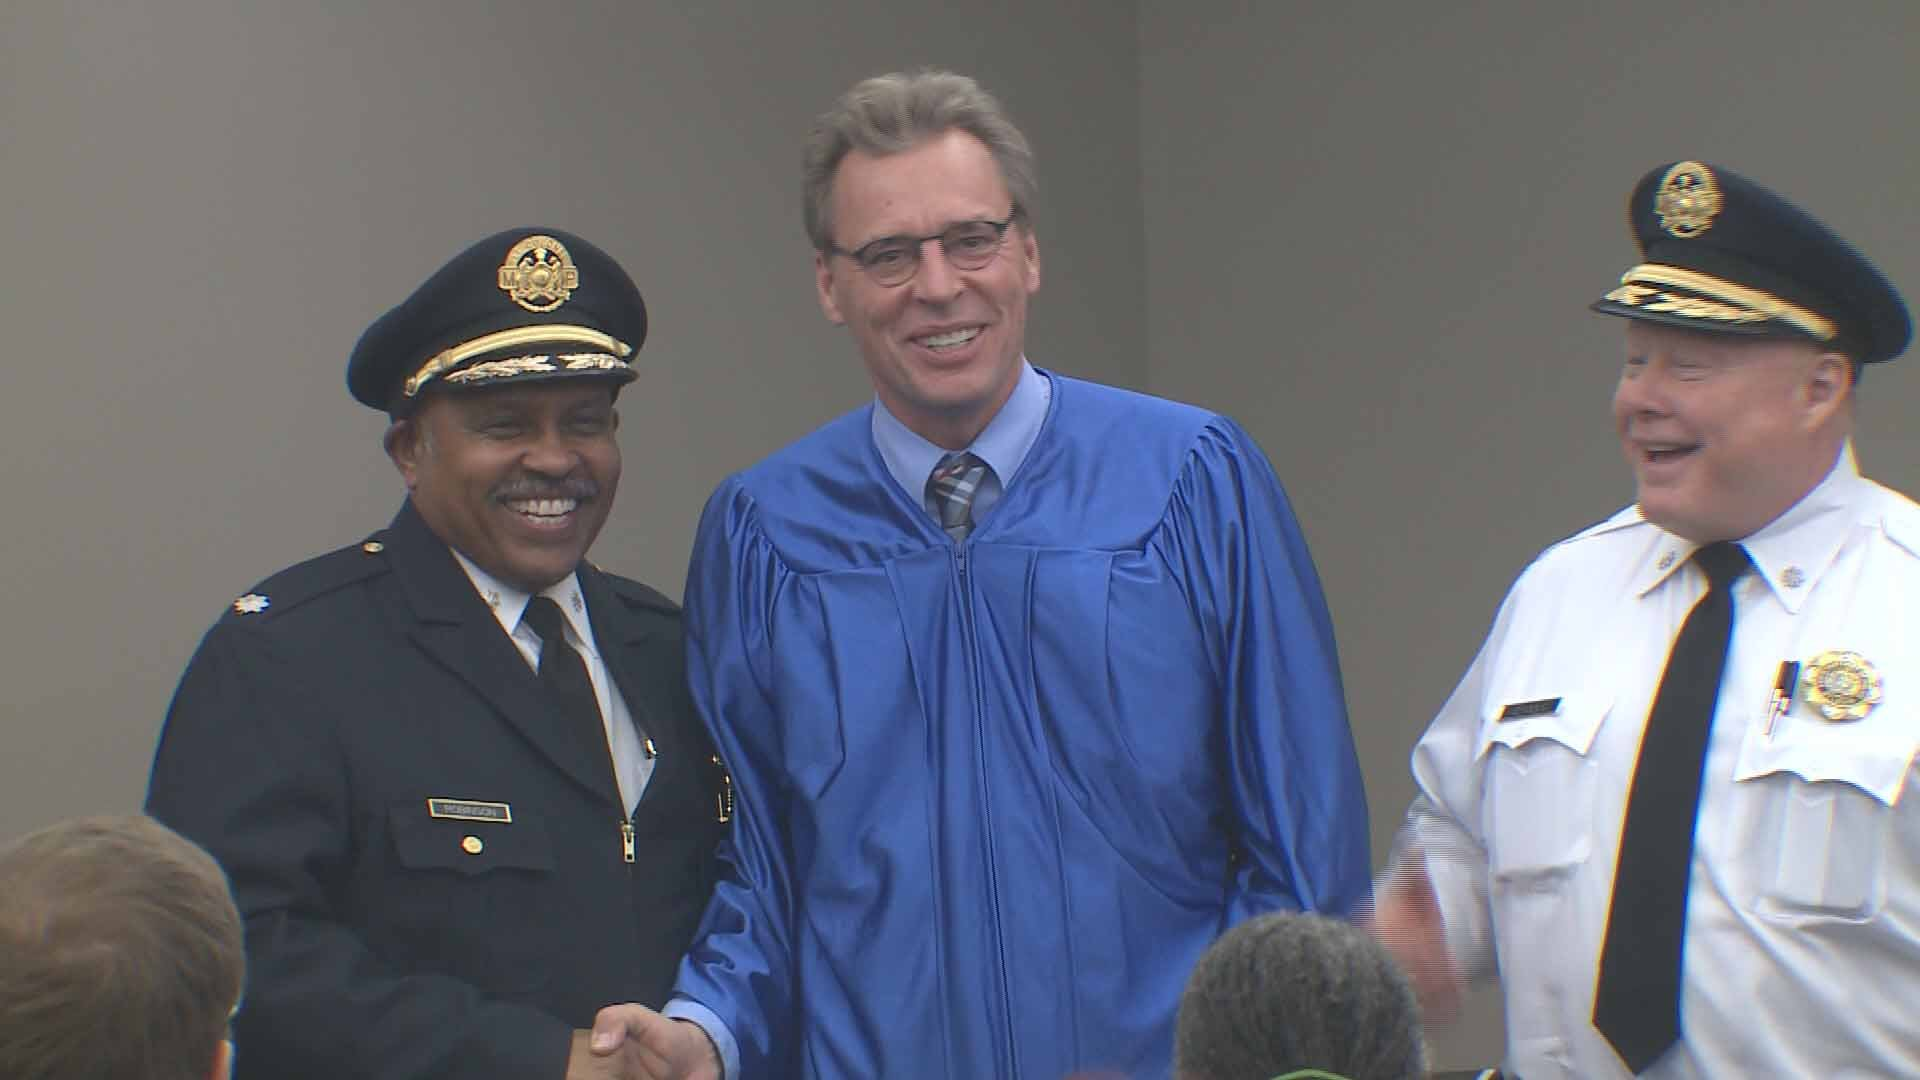 Our own Ray Preston graduated from the SLMPD Citizen's Academy on Wednesday. Credit: KMOV